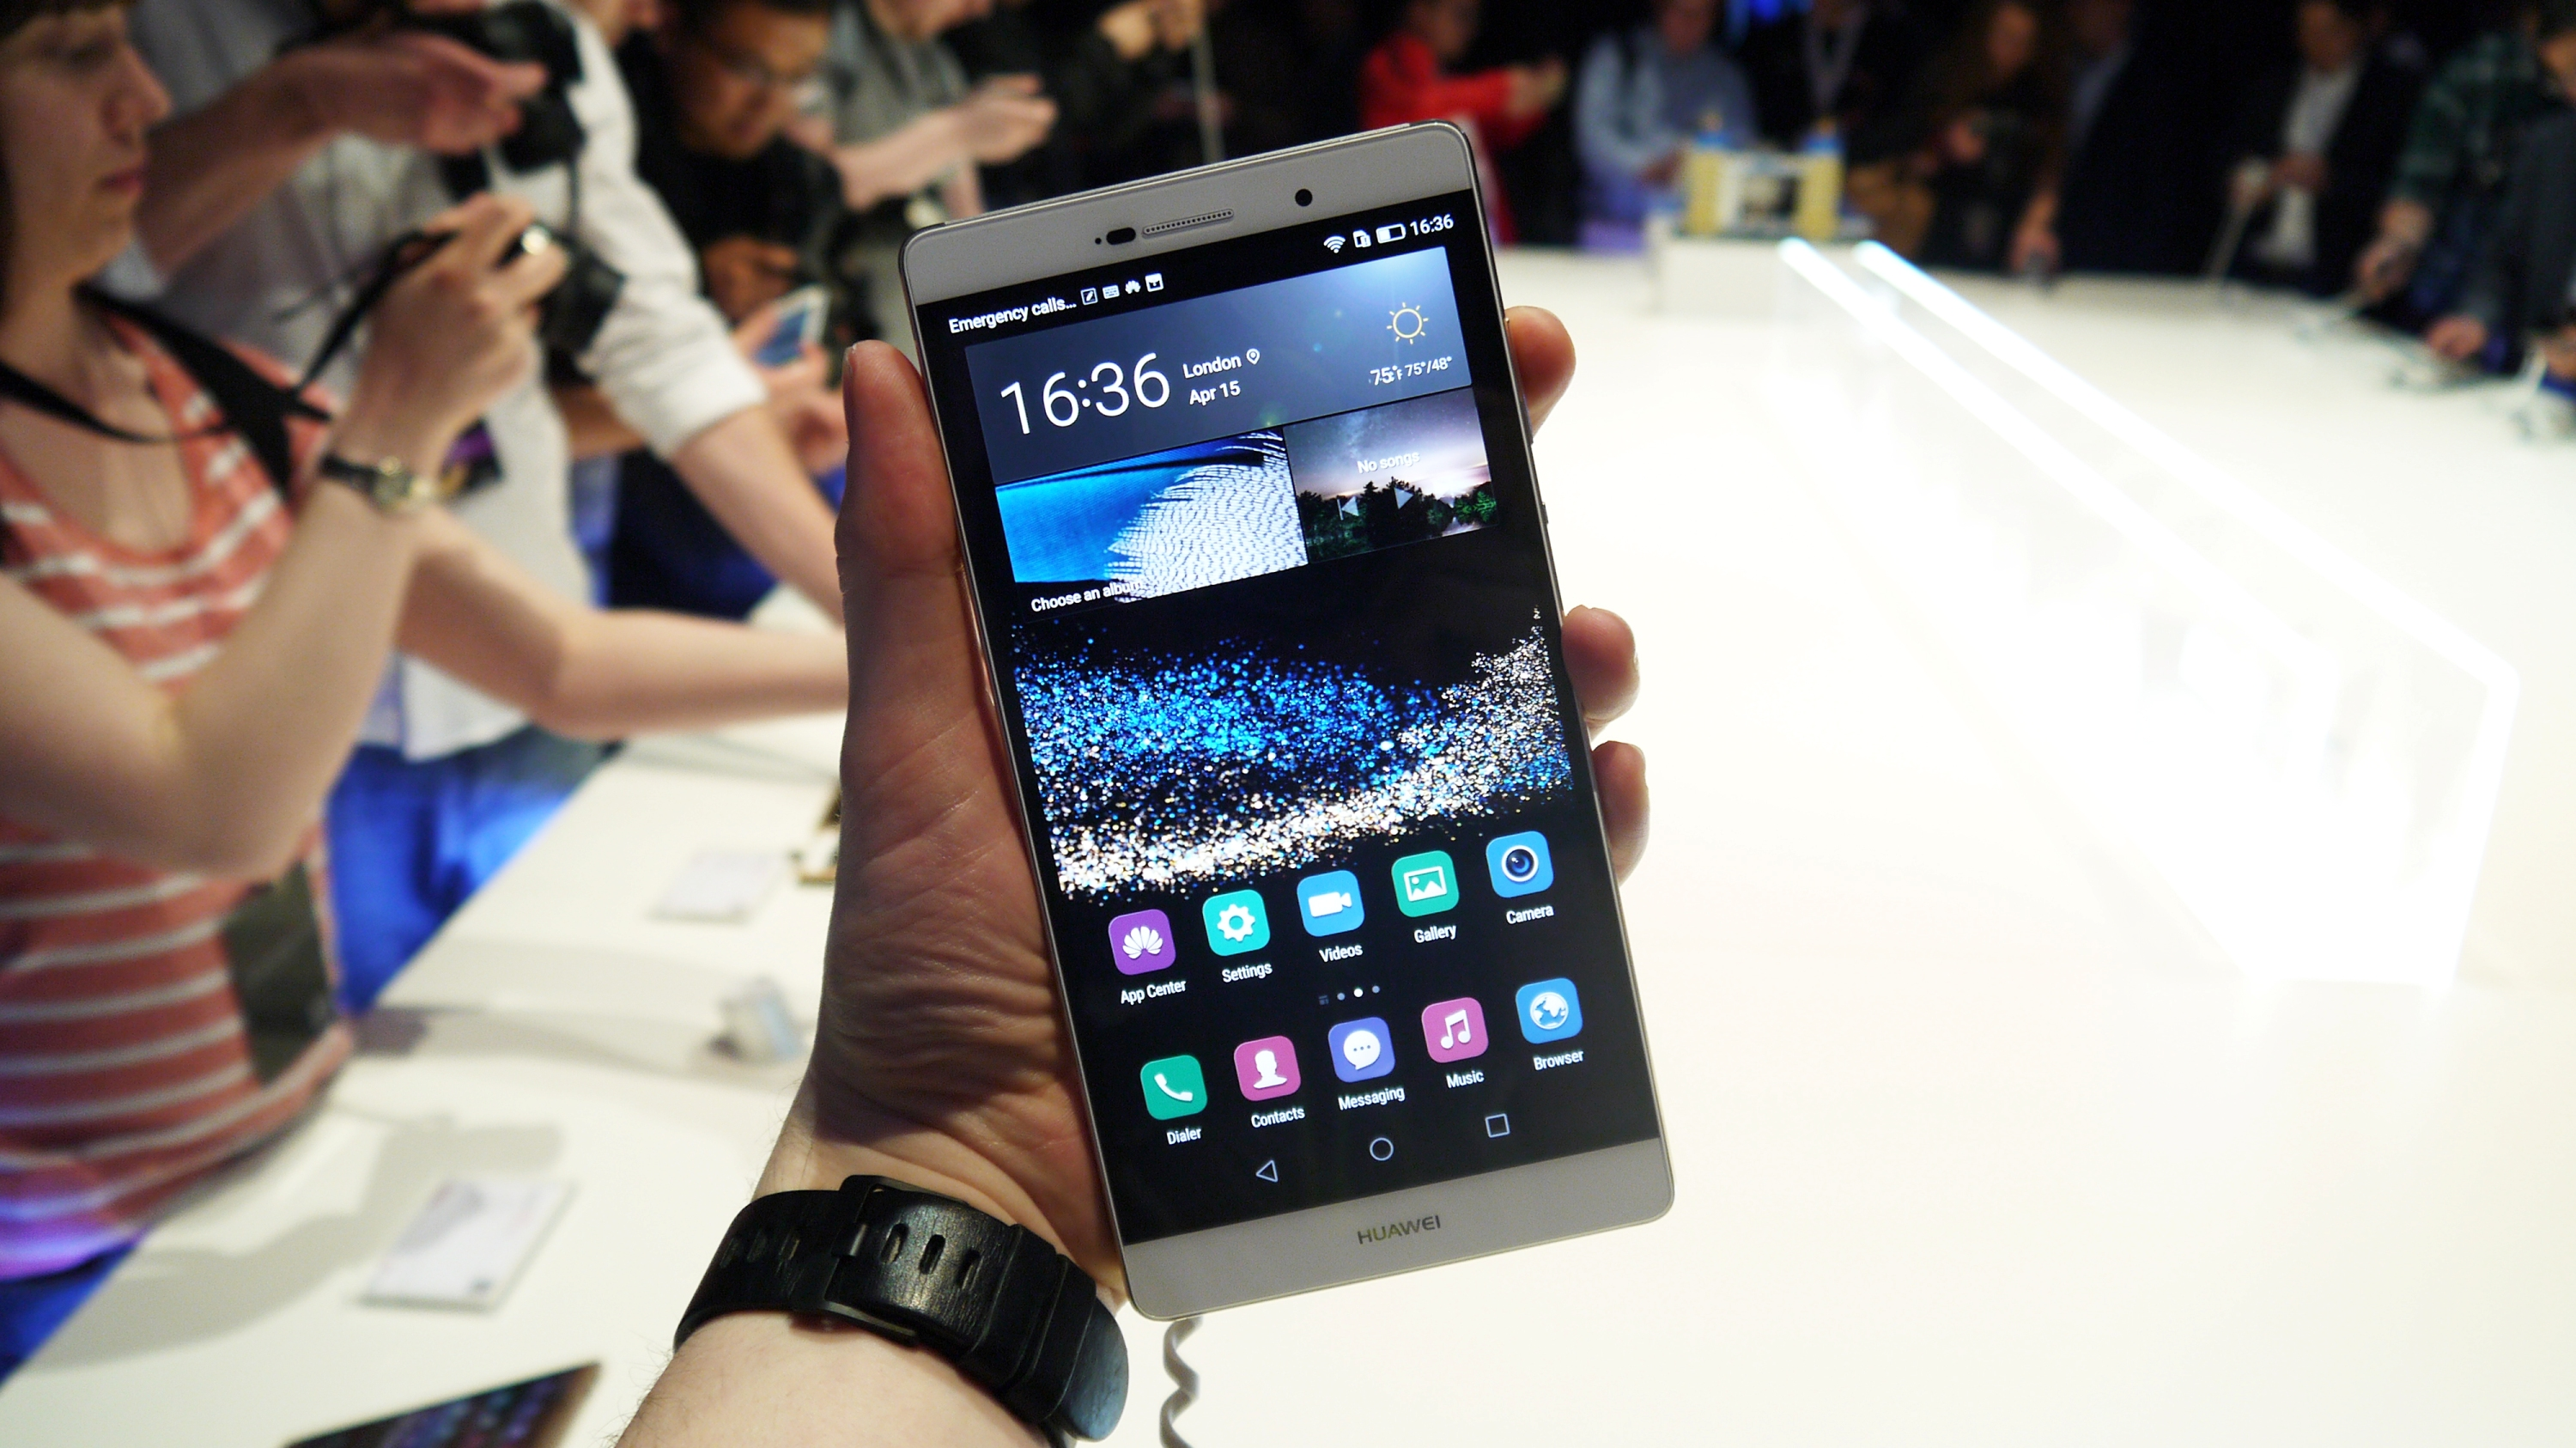 Hands on: Huawei P8 Max review   TechRadar